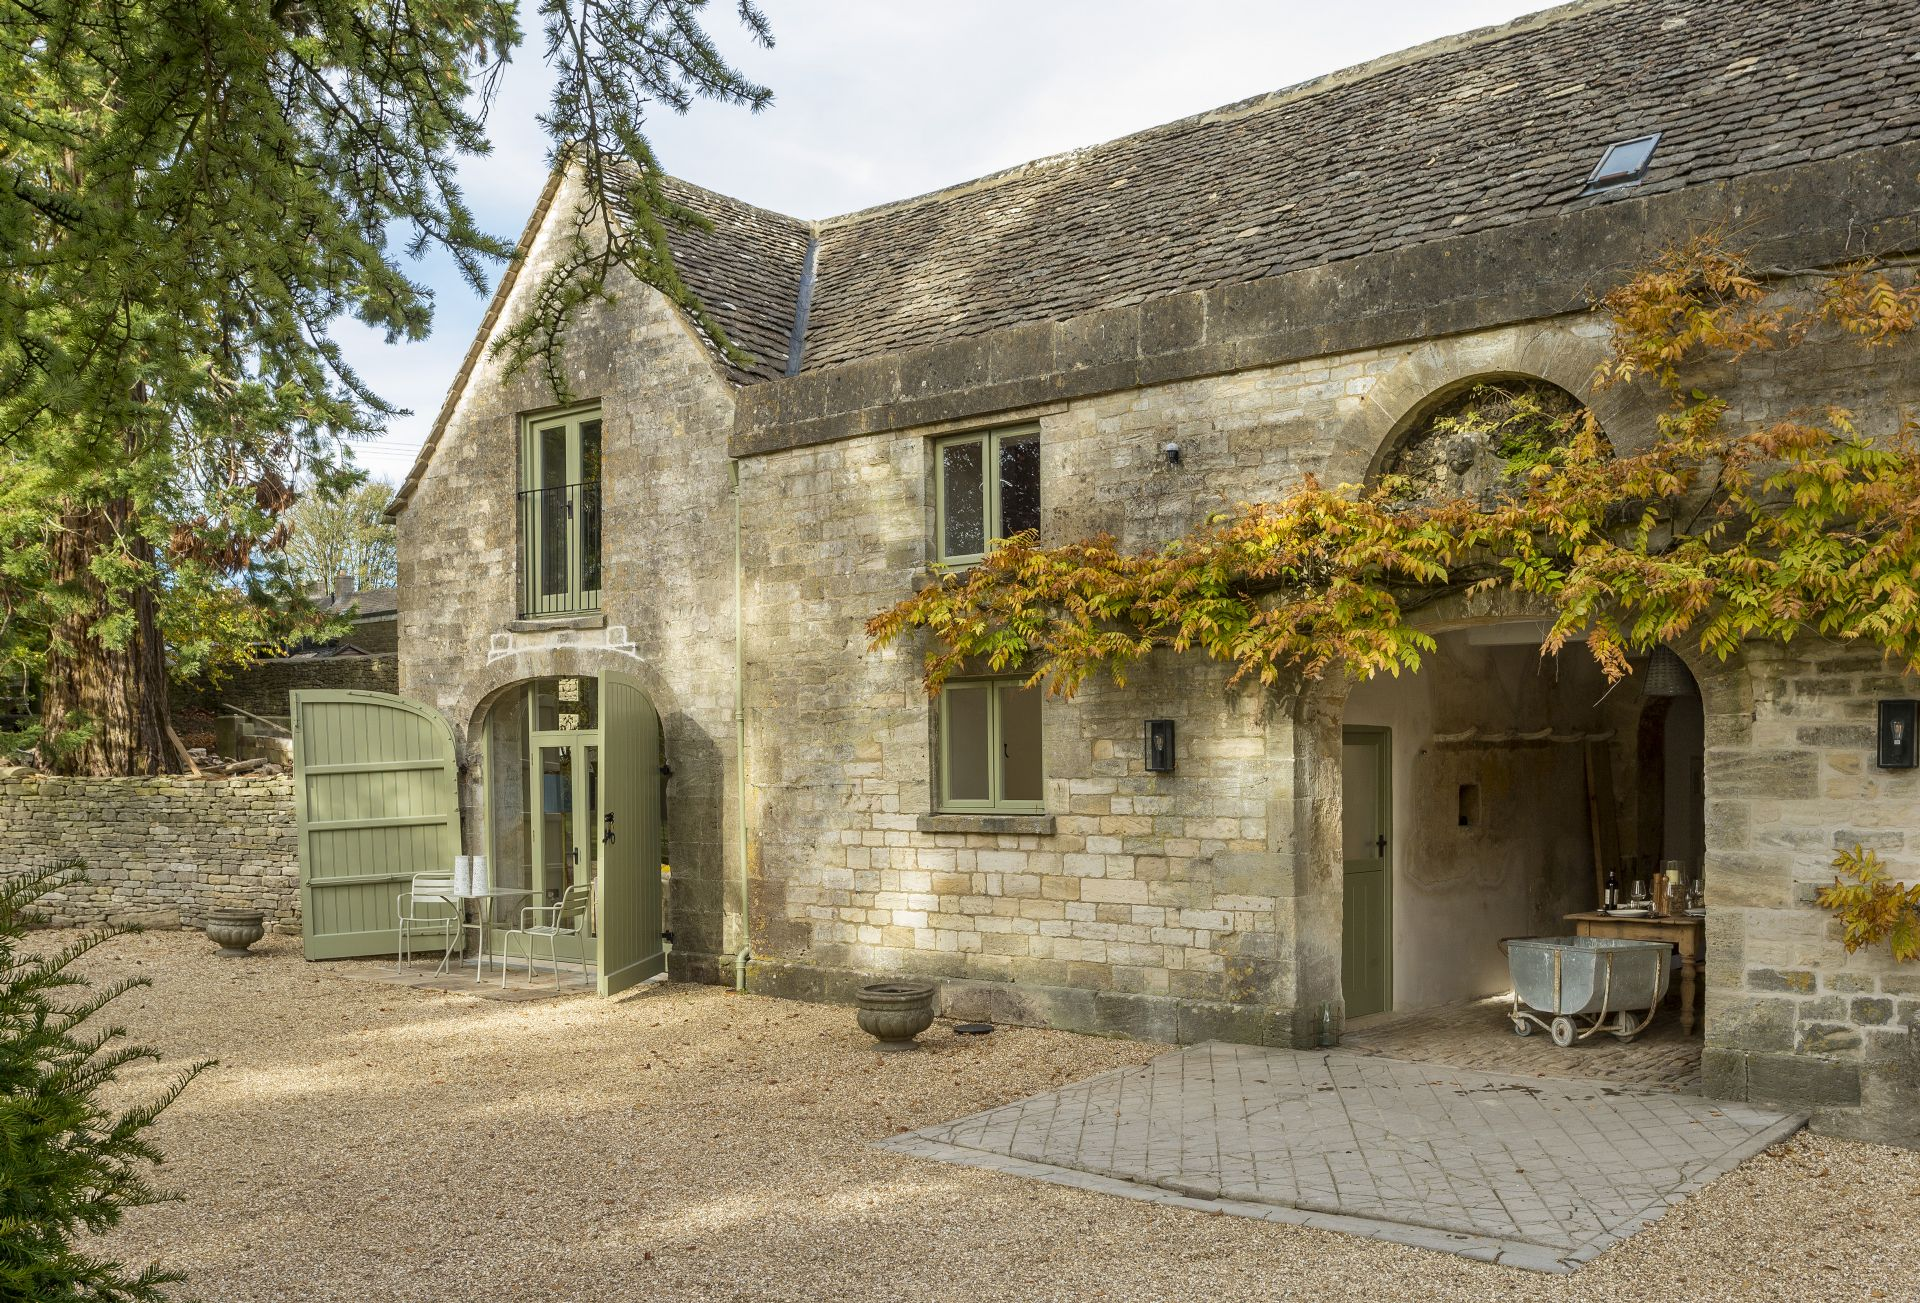 More information about The Coach House at The Lammas - ideal for a family holiday